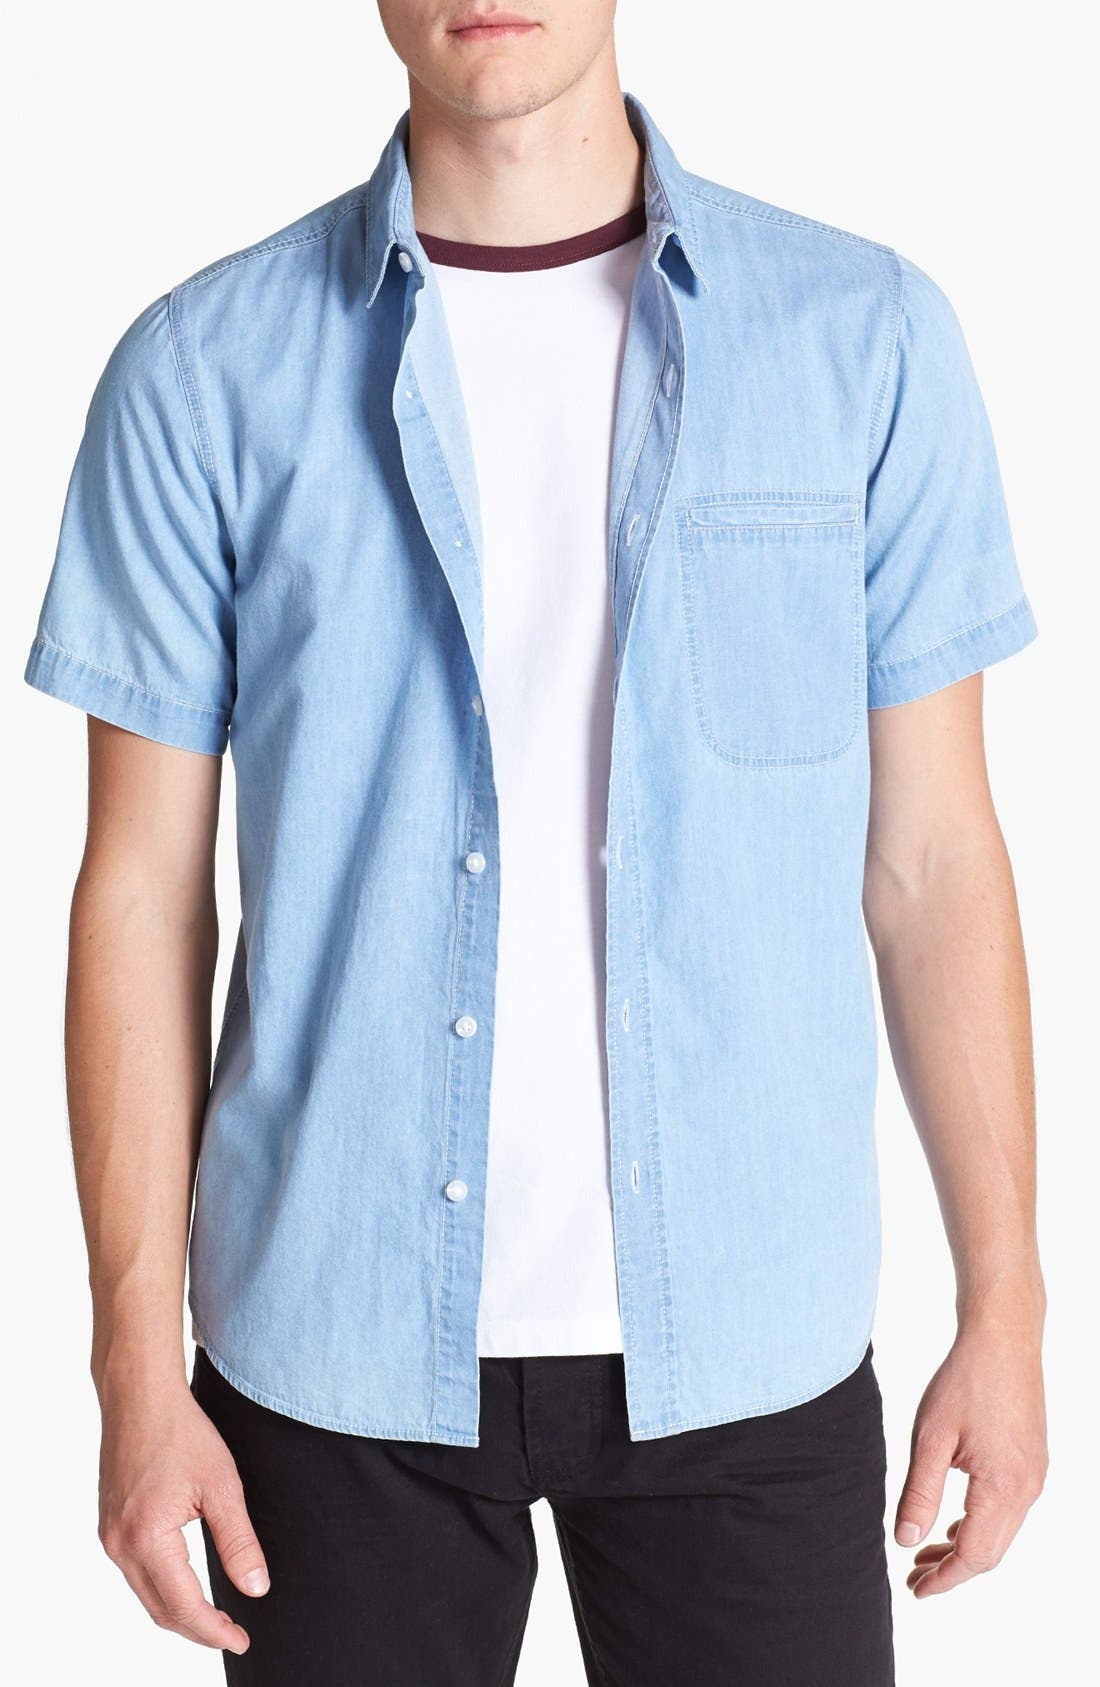 Alternate Image 1 Selected - Topman Short Sleeve Denim Shirt